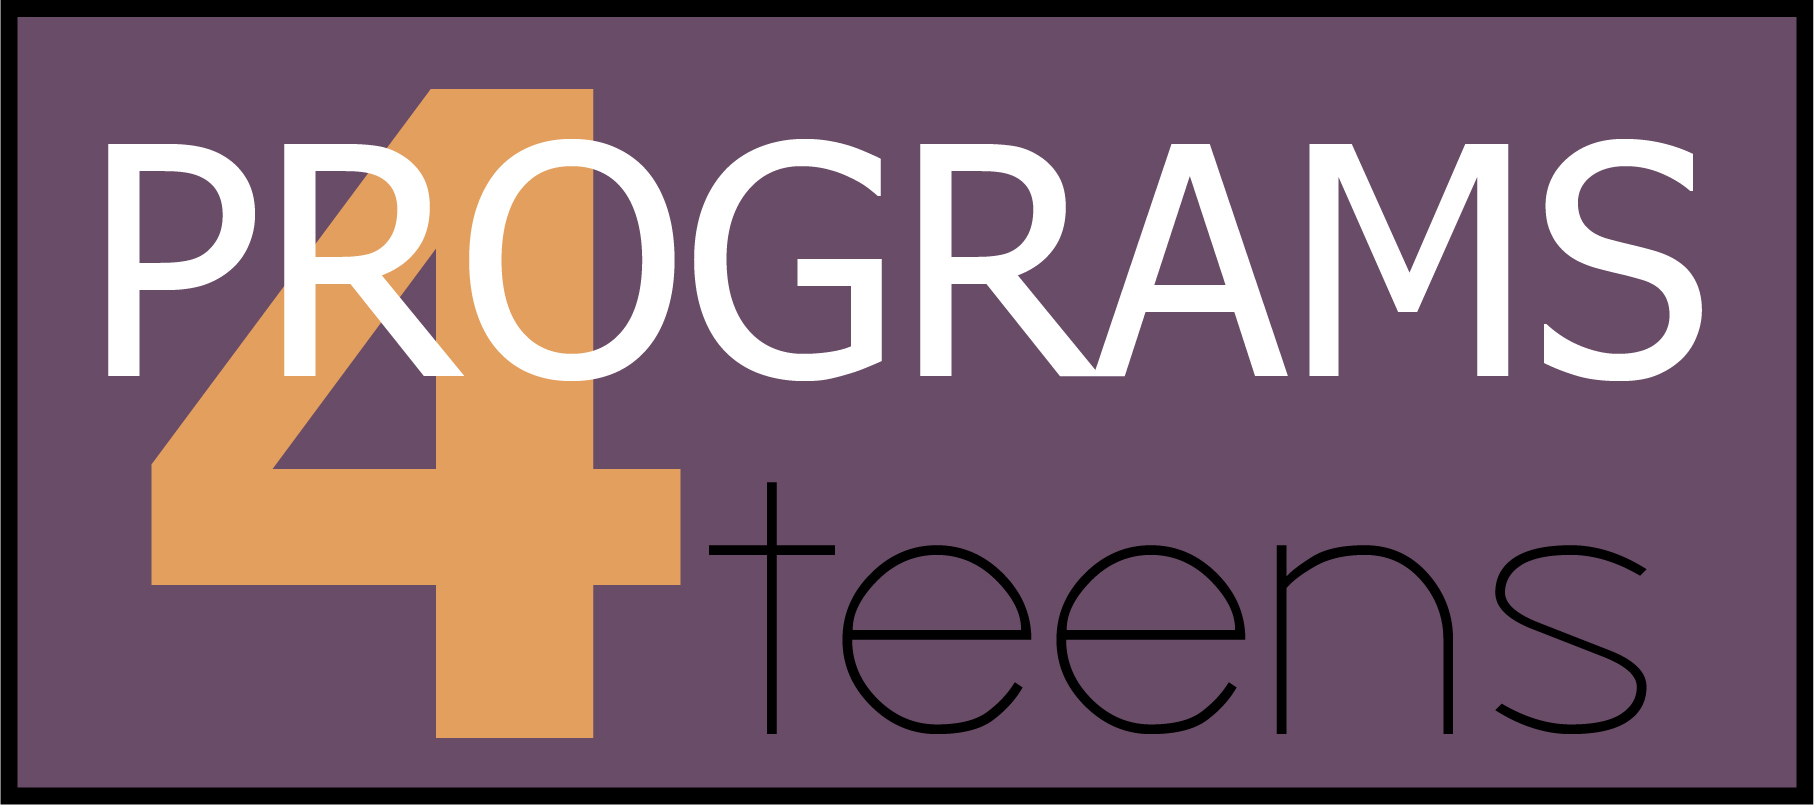 Of programs for teen — 13